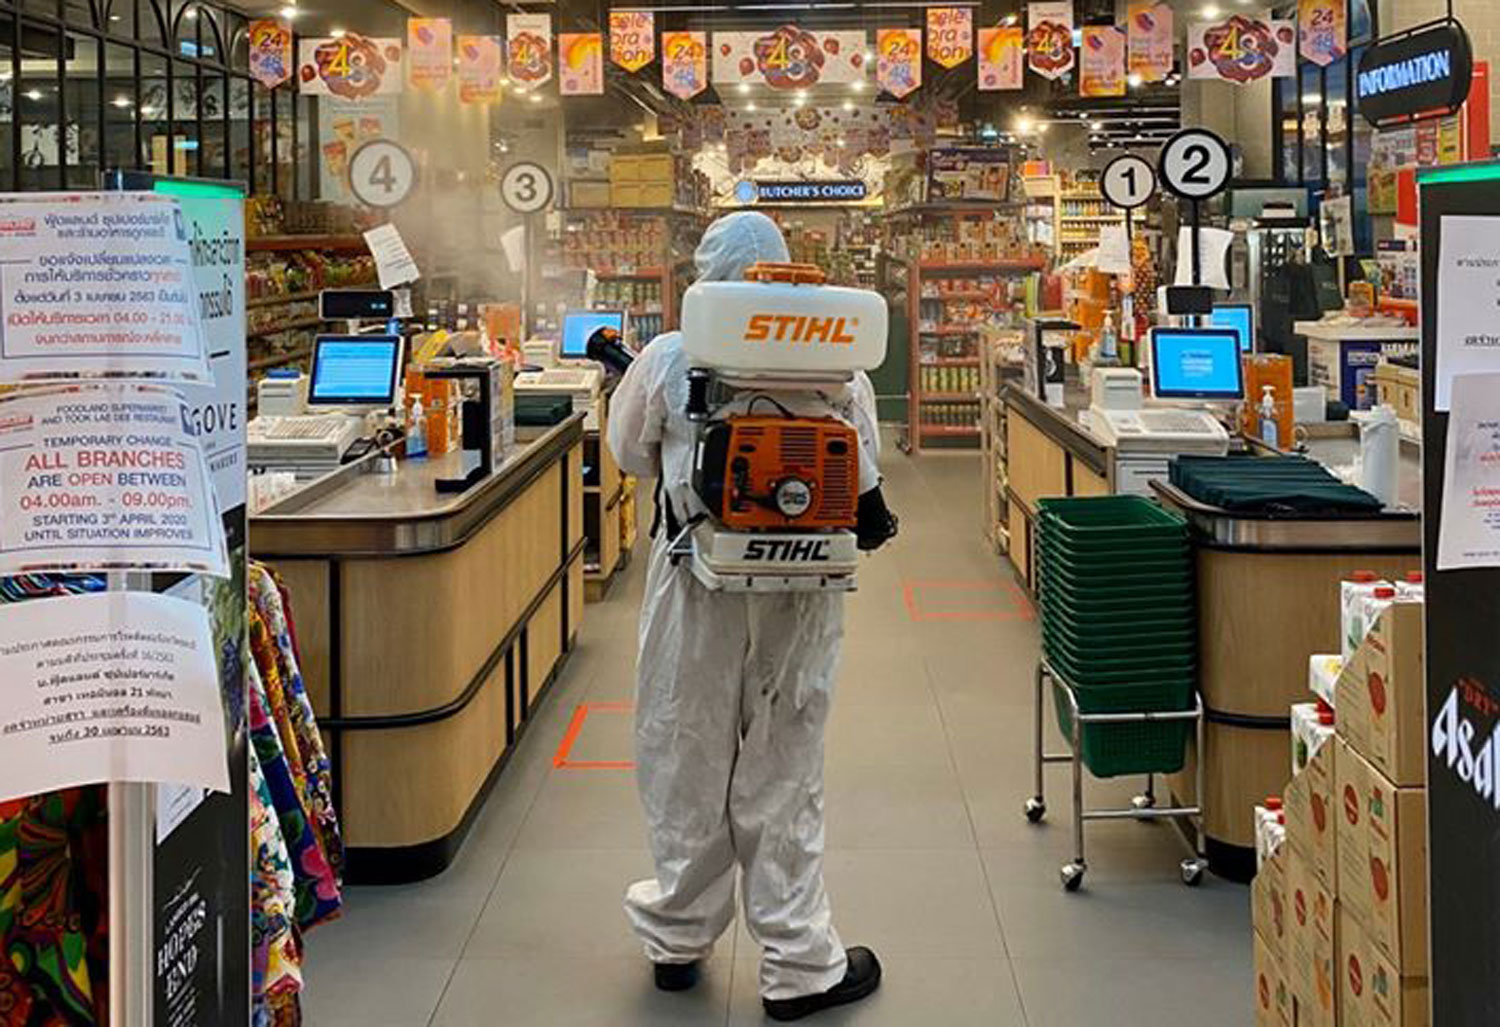 A health official sprays disinfectant inside Foodland supermarket at Terminal 21 Pattaya shopping mall on Wednesday night, after it was learned a person infected with Covid-19 shopped there on April 5. (Photo by Chaiyot Pupattanapong)